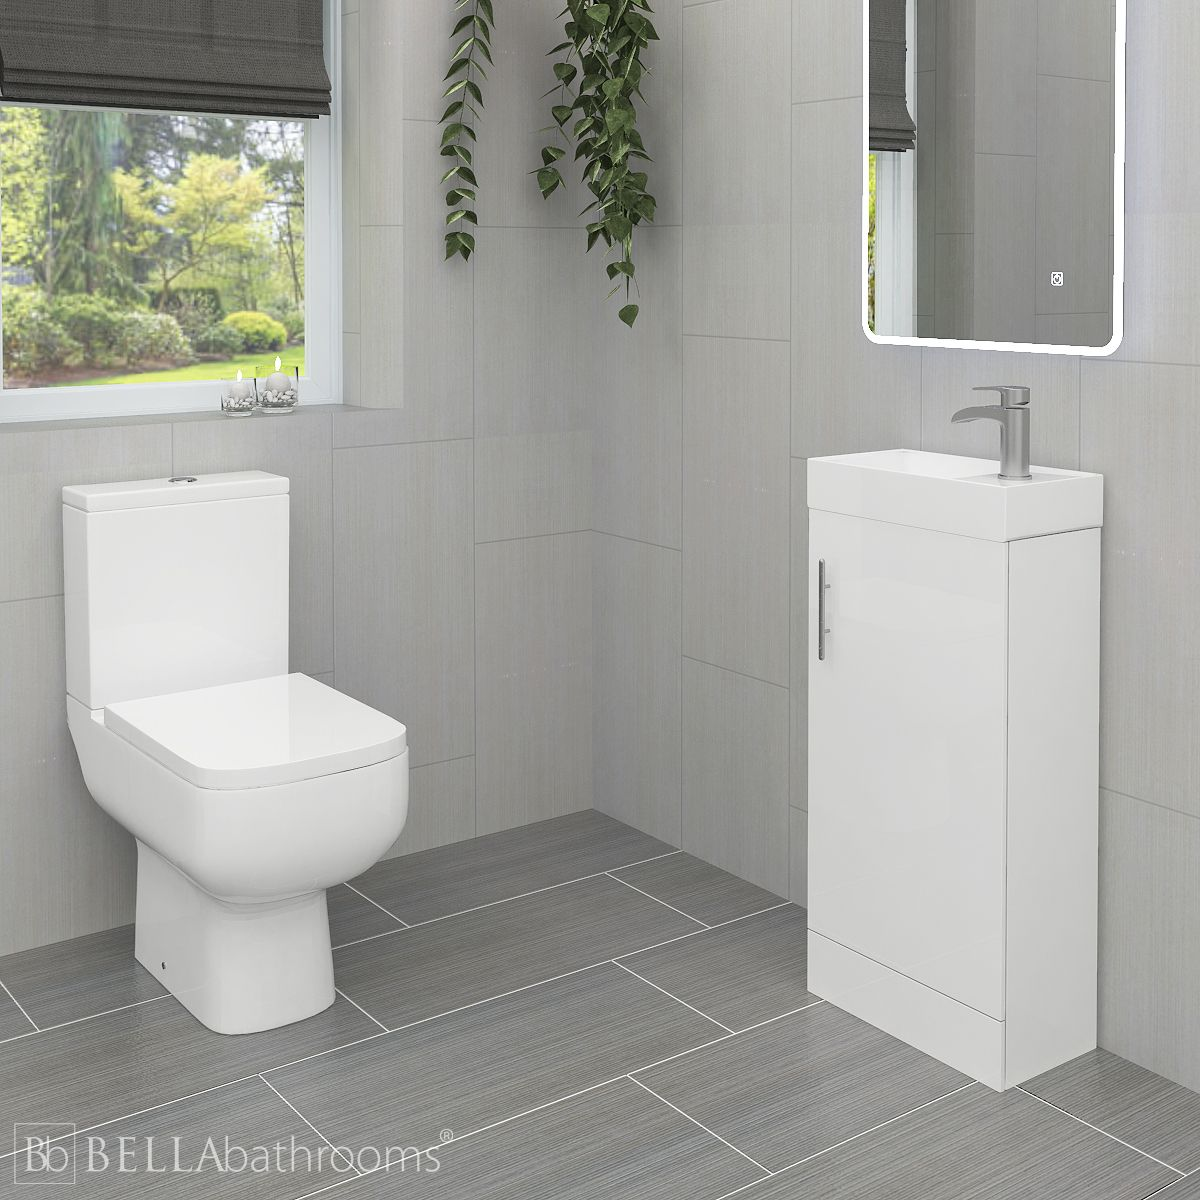 RAK Series 600 Toilet and 400 Series Gloss White Vanity Unit